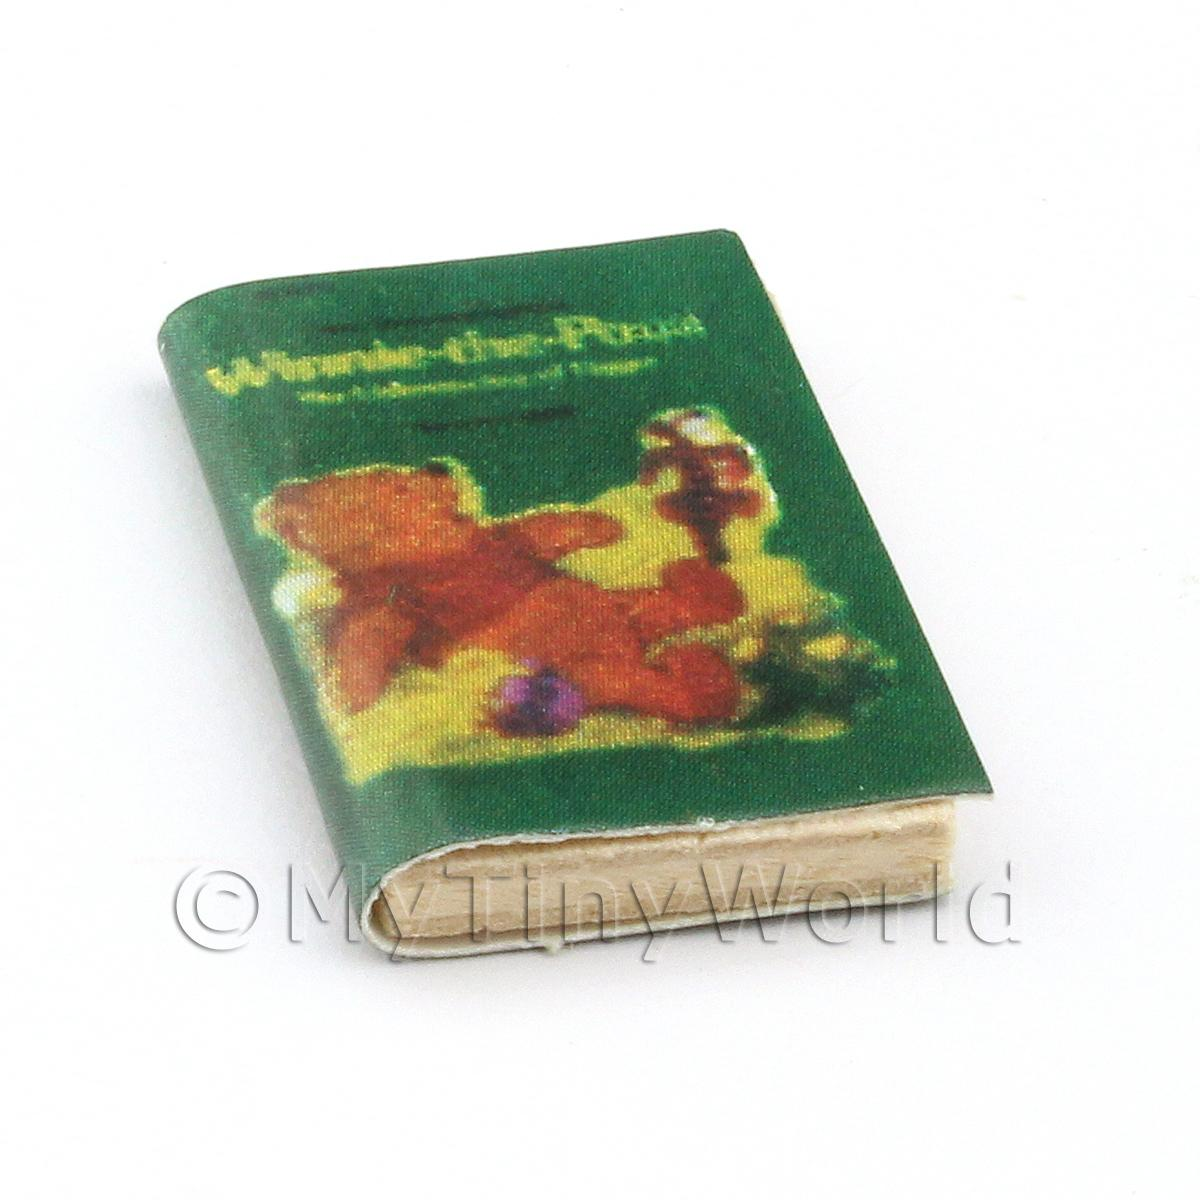 Dolls House Miniature Winnie The Pooh Book